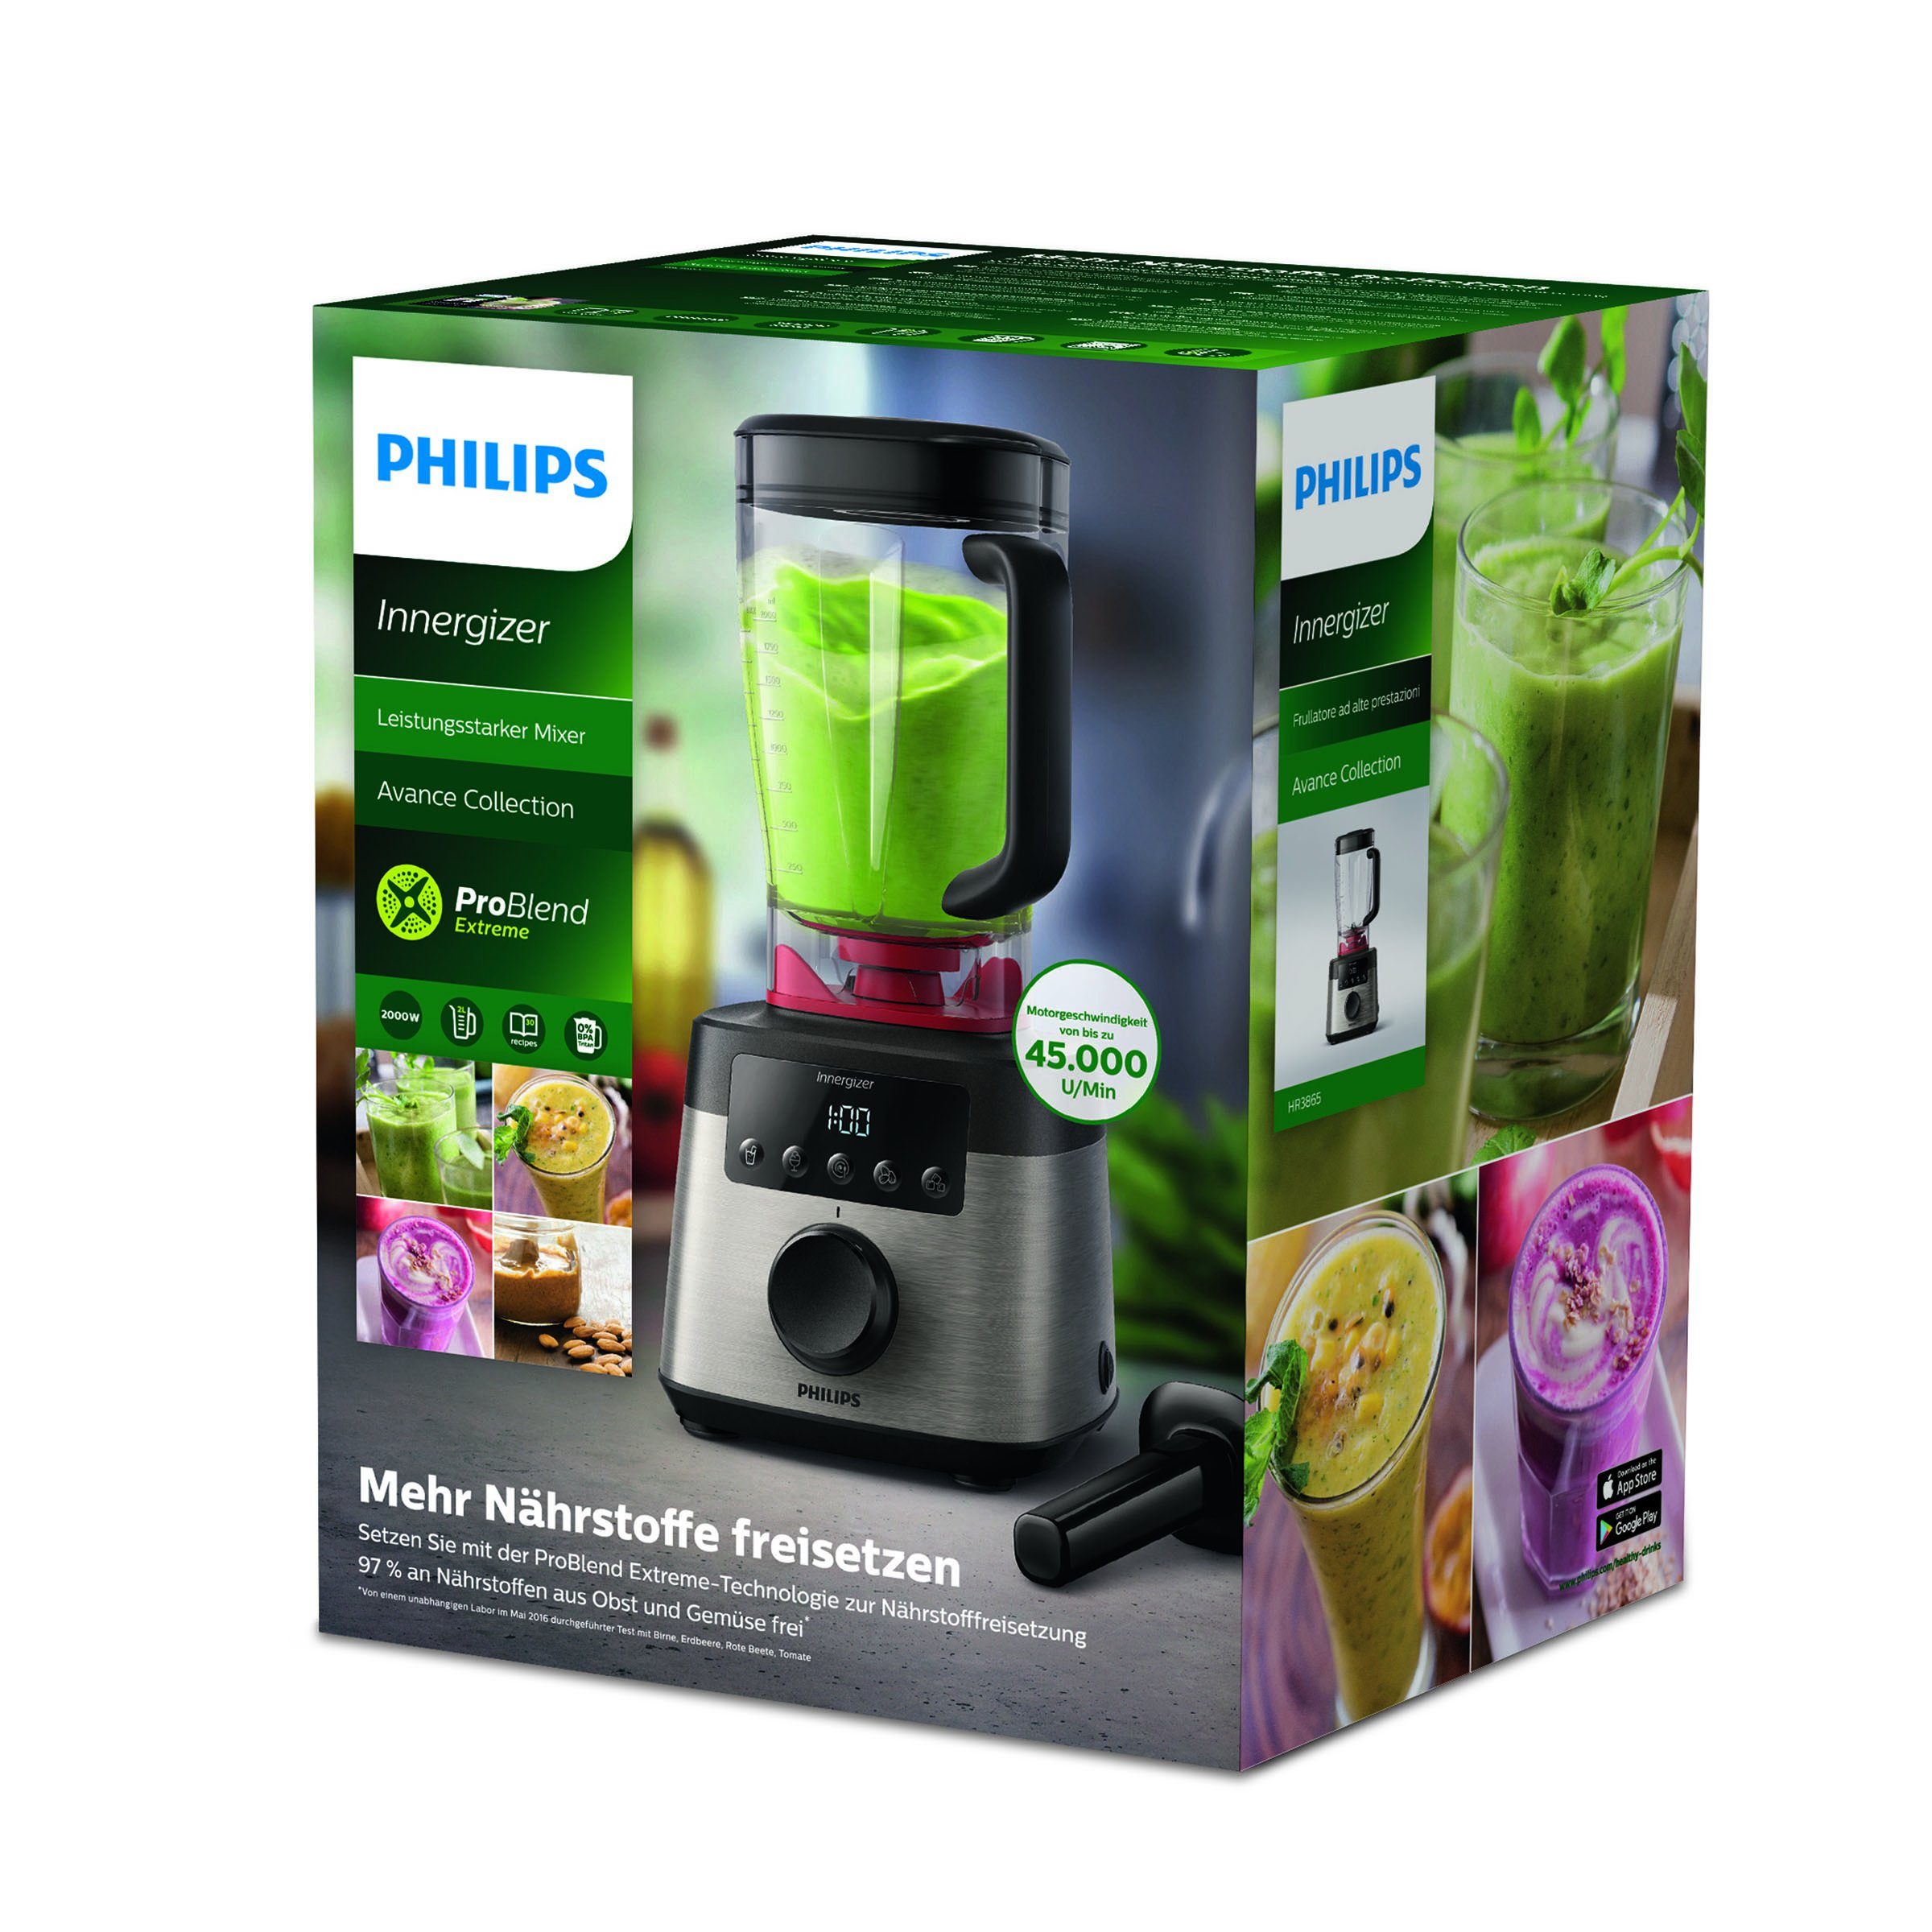 Philips Avance Collection Batidora Innergizer de alta velocidad ...